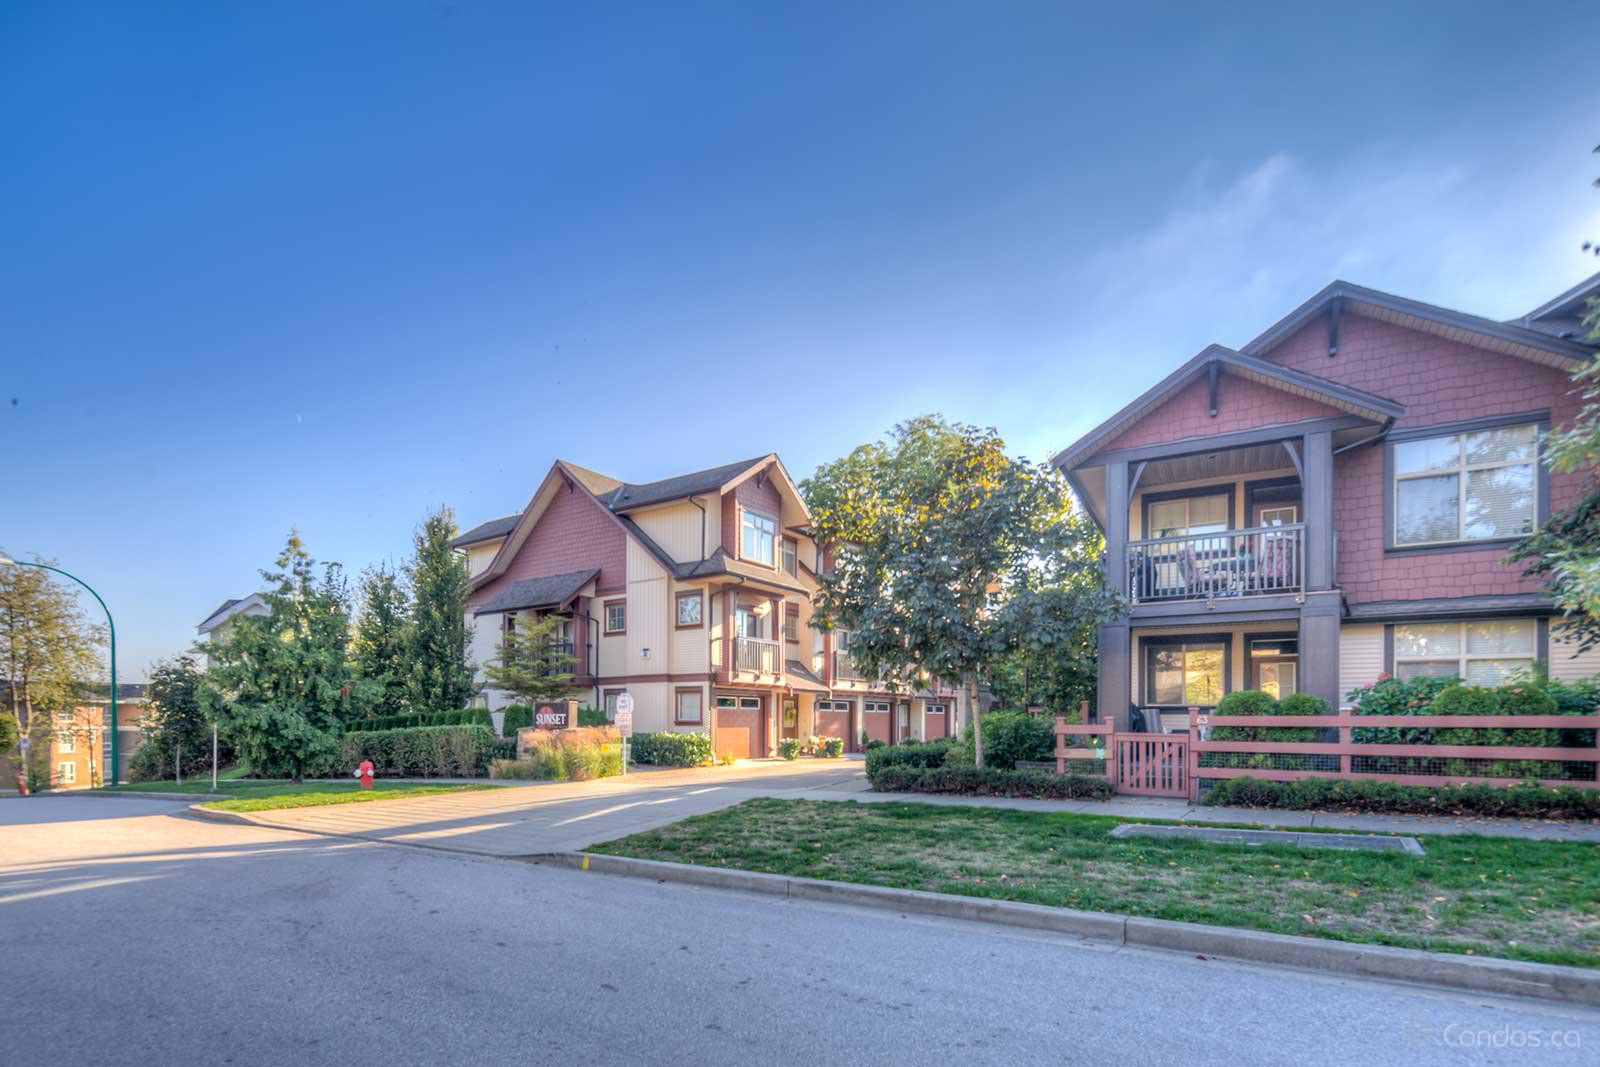 Sunset Grove at 19478 65 Ave, Surrey 0